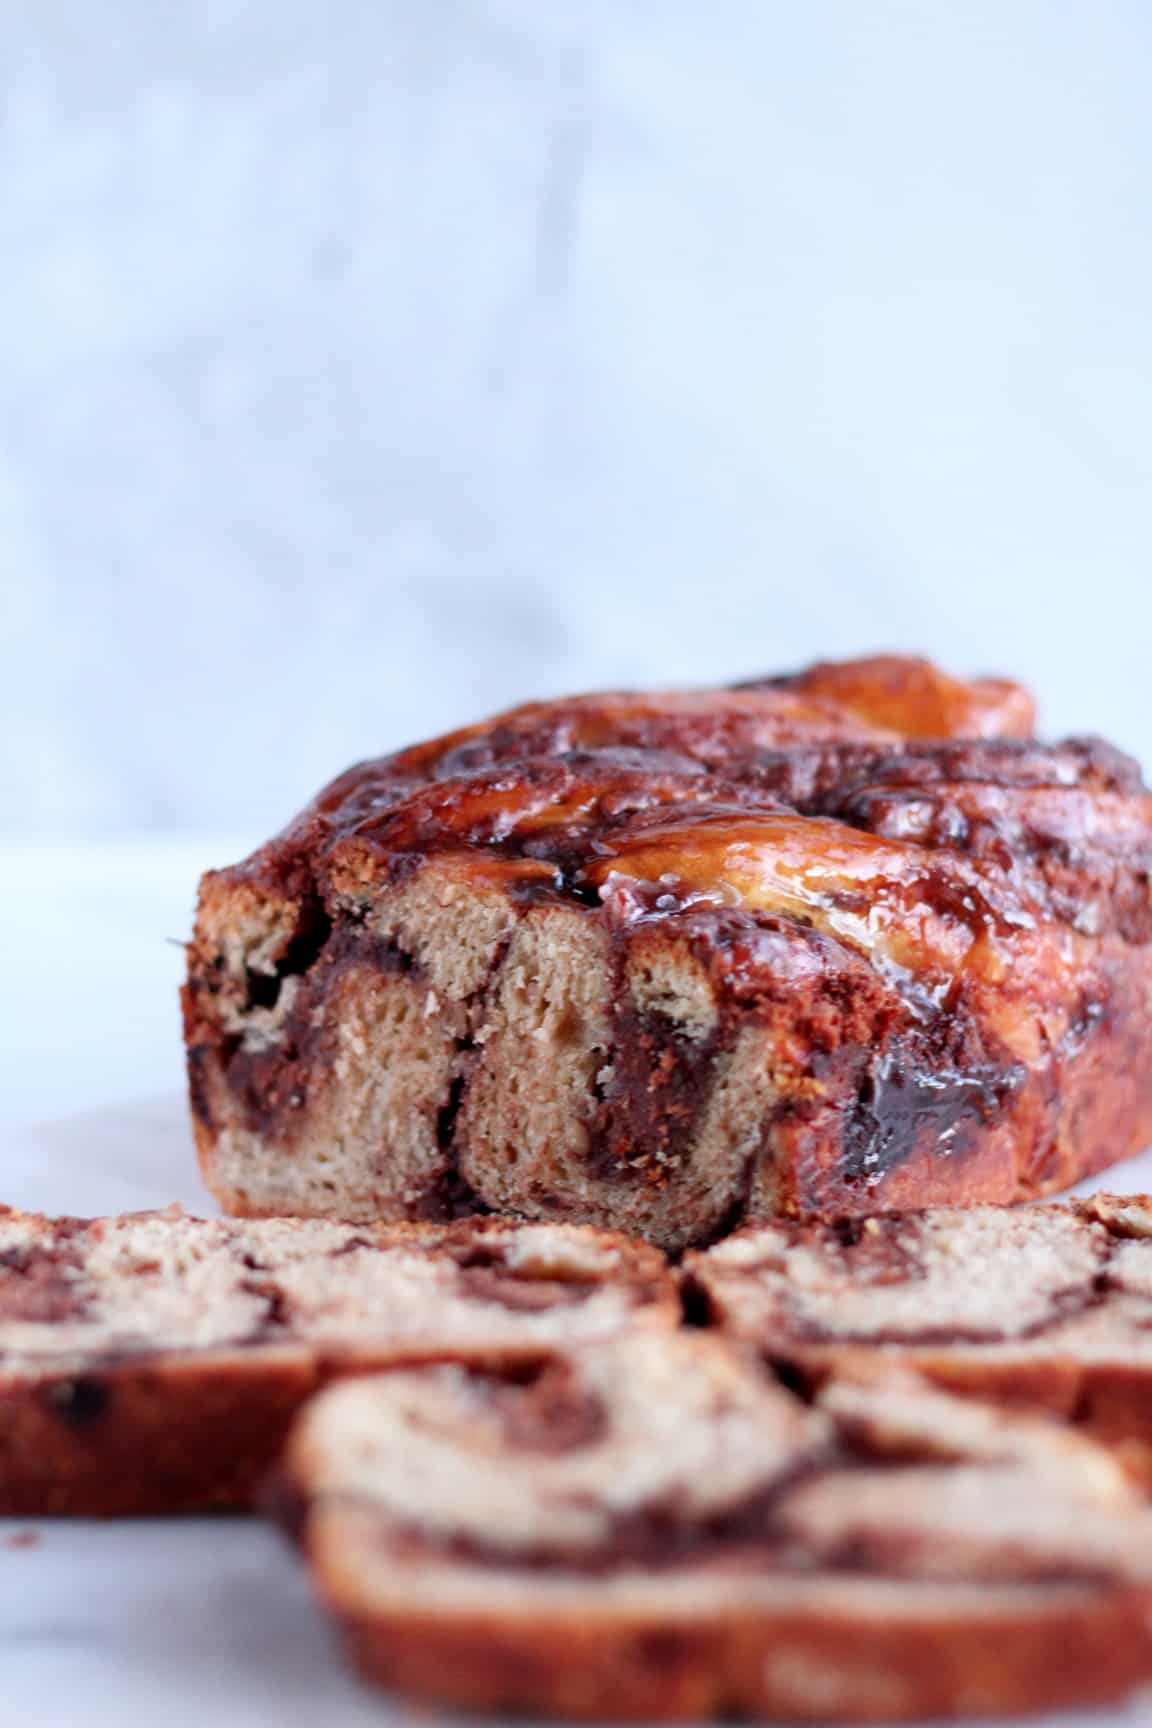 chocolate babka with almond filling cut in three slices